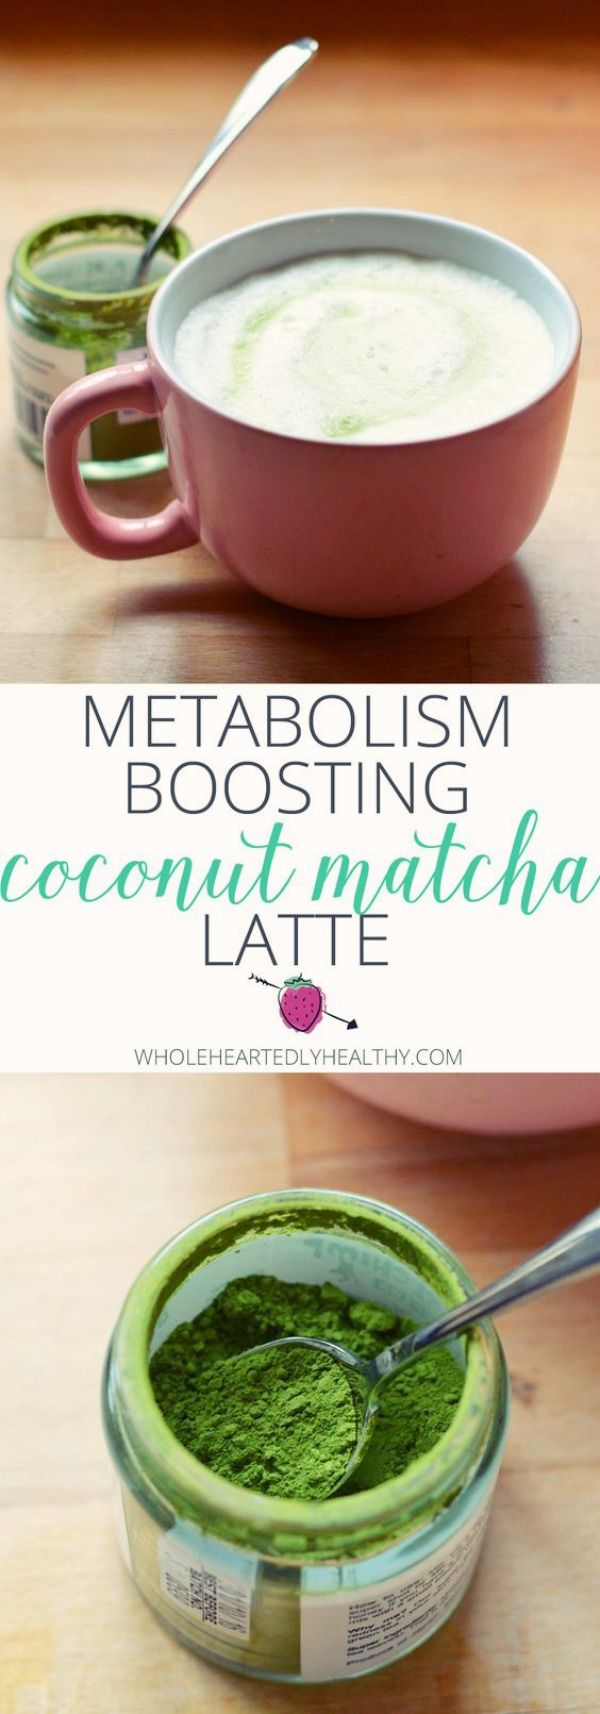 Metabolism Boosting Coconut Matcha Latte | In this recipe, I combine matcha with another powerhouse superfood coconut oil. Coconut oil is another metabolism boosting food full of medium chain fatty acids which are used by the body in a different way to other fats. Combined, they create a delicious metabolism boosting drink with a light caffeine kick.  via: @lauraagarwilson